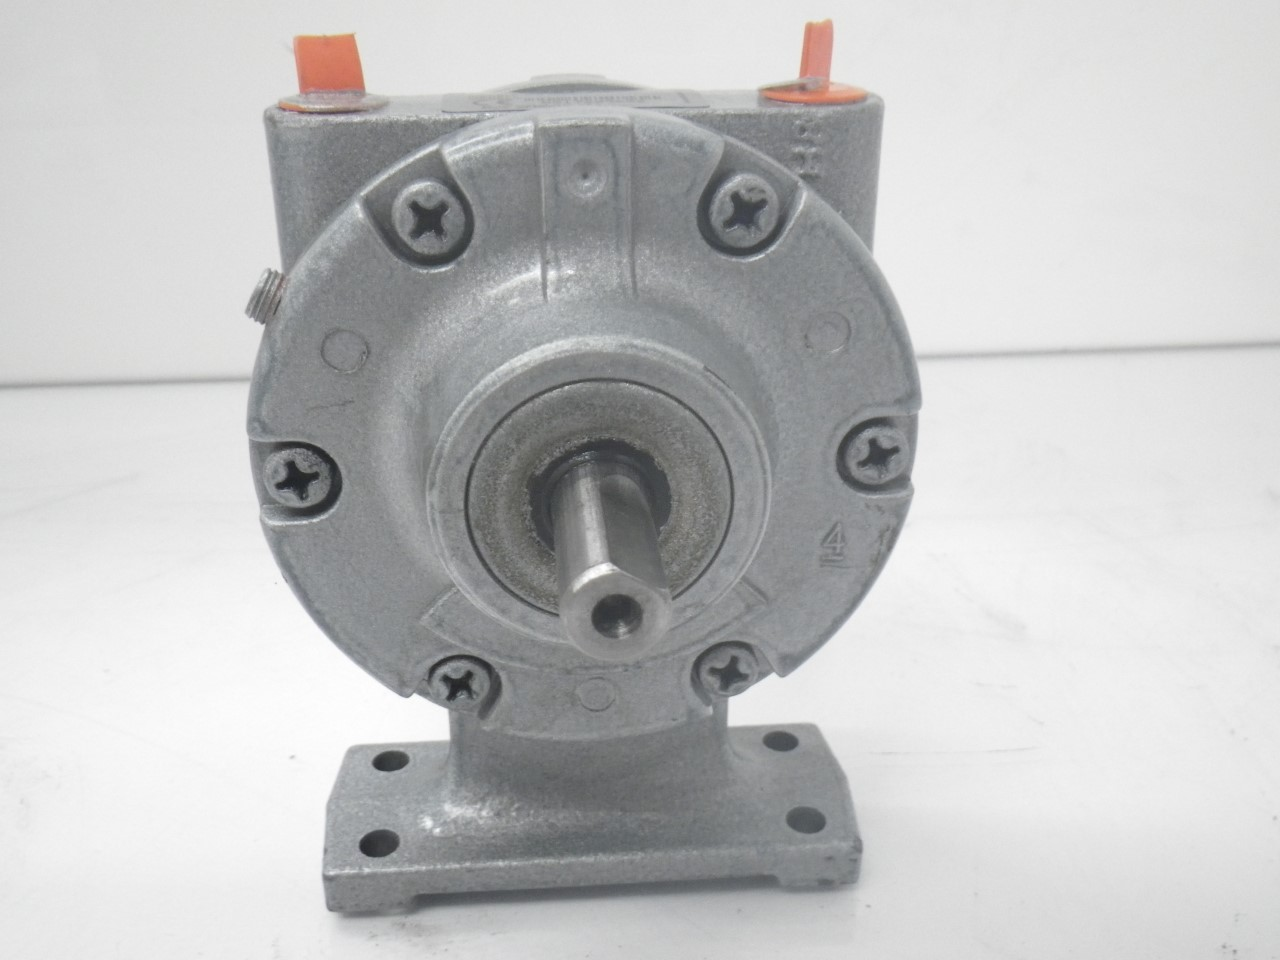 IMGP11832AM-FCC-1 Gast Air Motor (Used Tested) (Very Good Condition) (1)